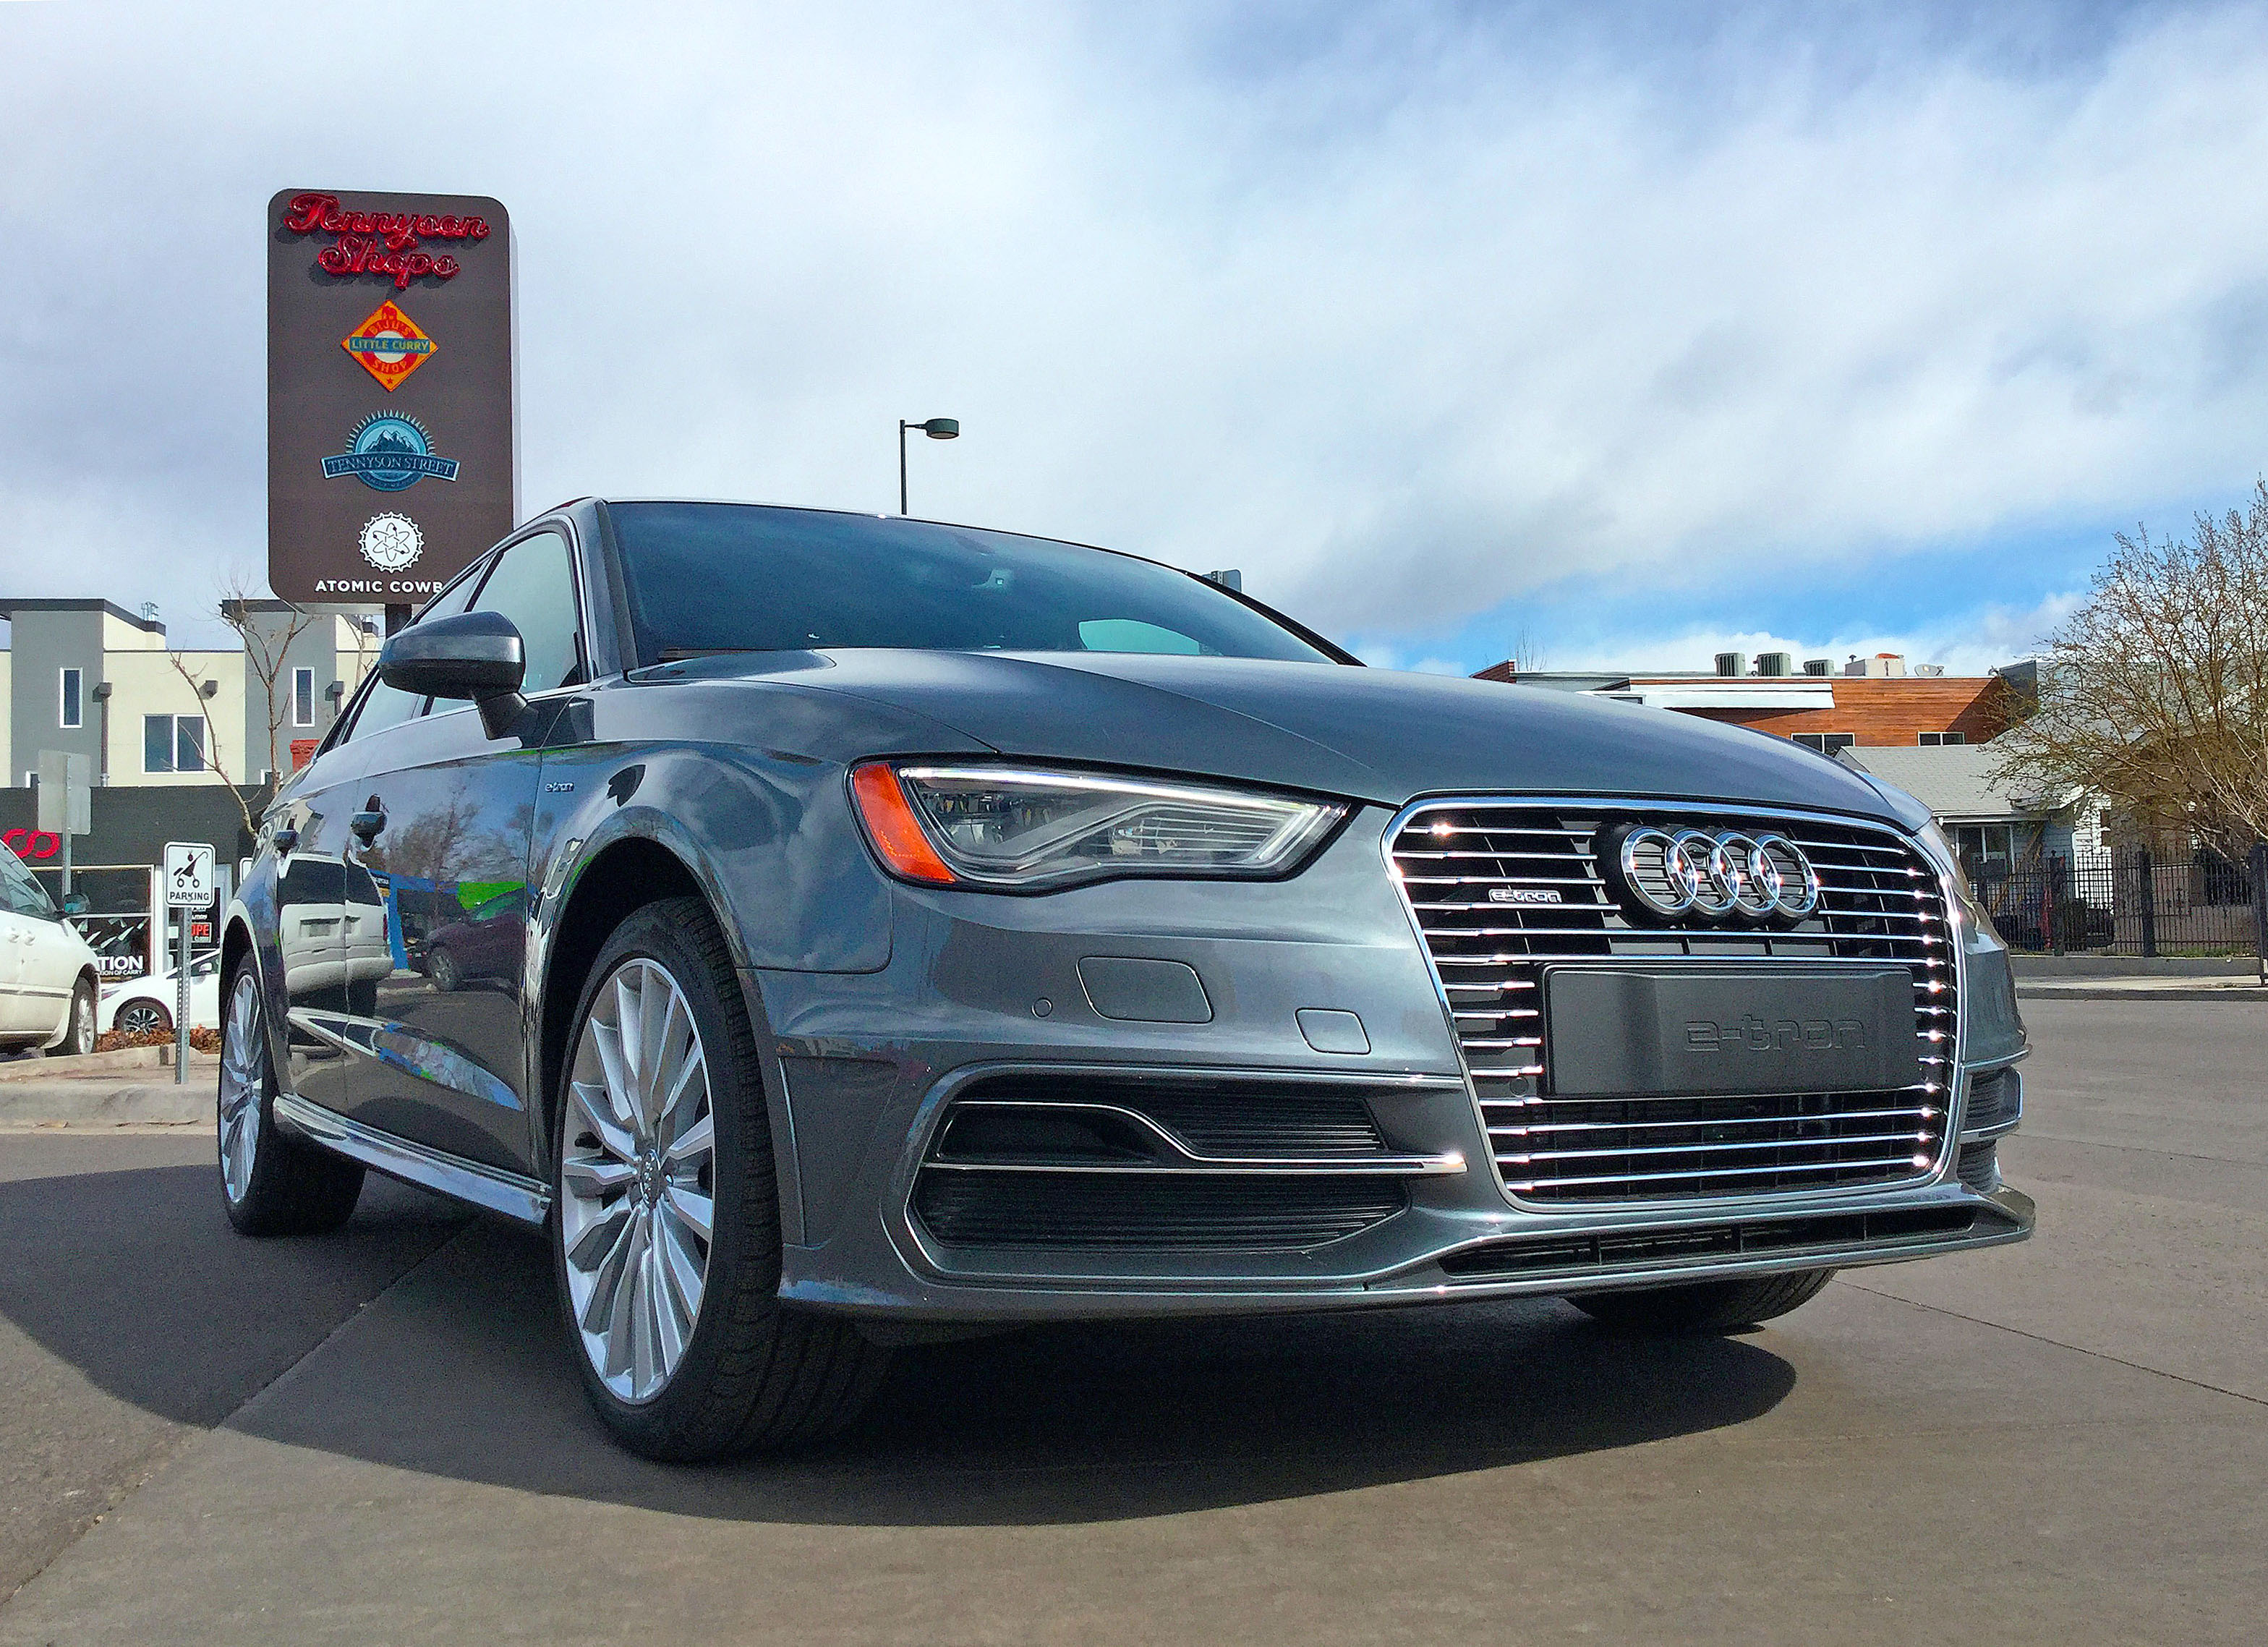 Audi A3 e-tron parked at the Tennyson Shops in Denver's Berkeley neighborhood.